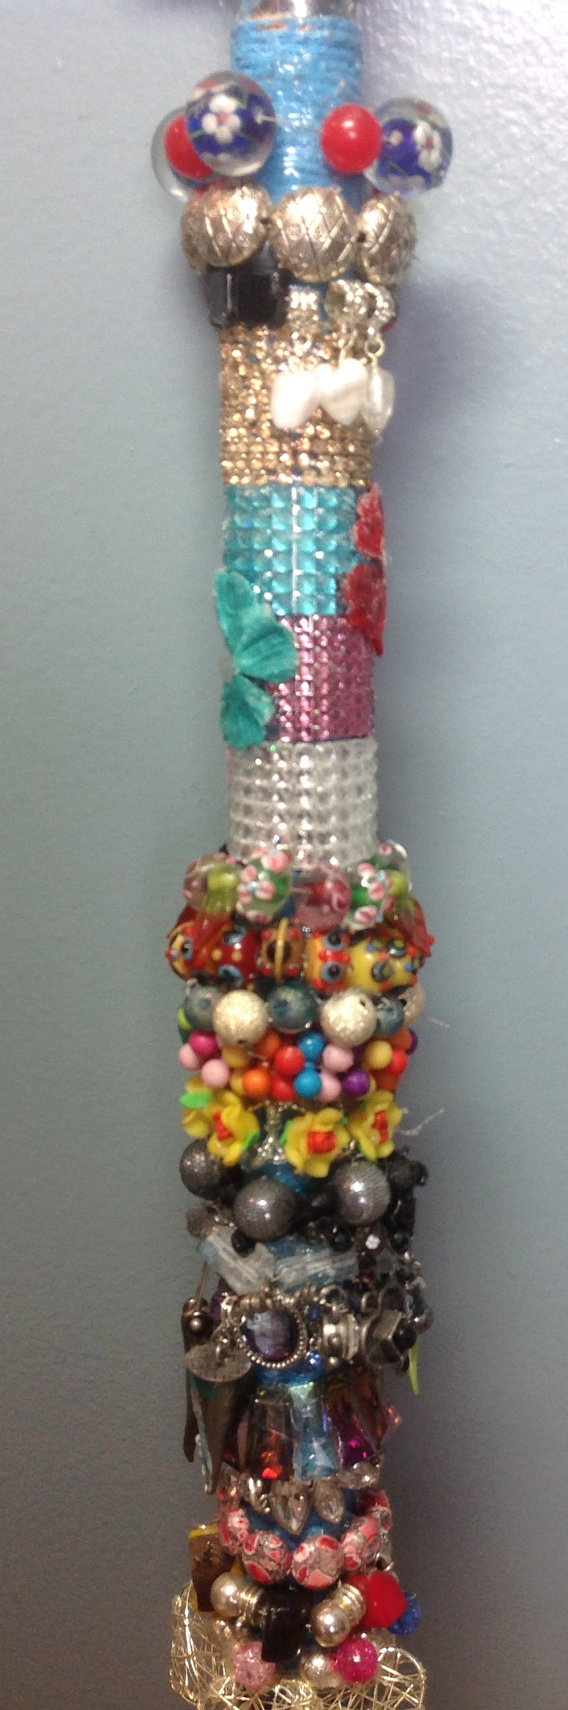 Walking Cane Decorations Decorative Beaded Cane And Walking Stickannielaine On Etsy